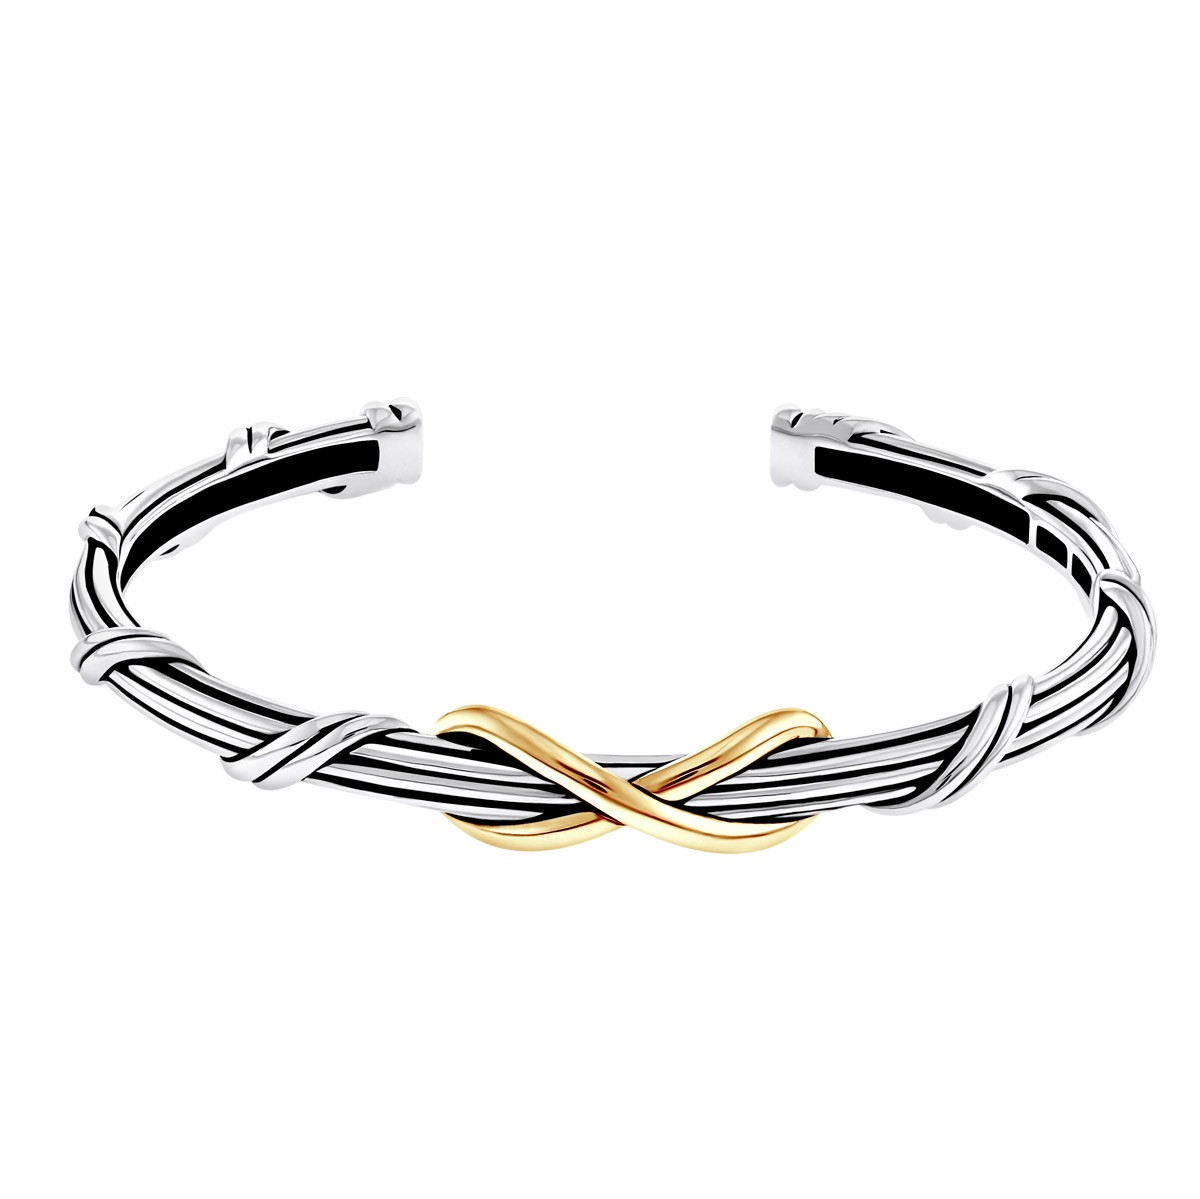 Signature Classic Infinity Cuff in two tone sterling silver